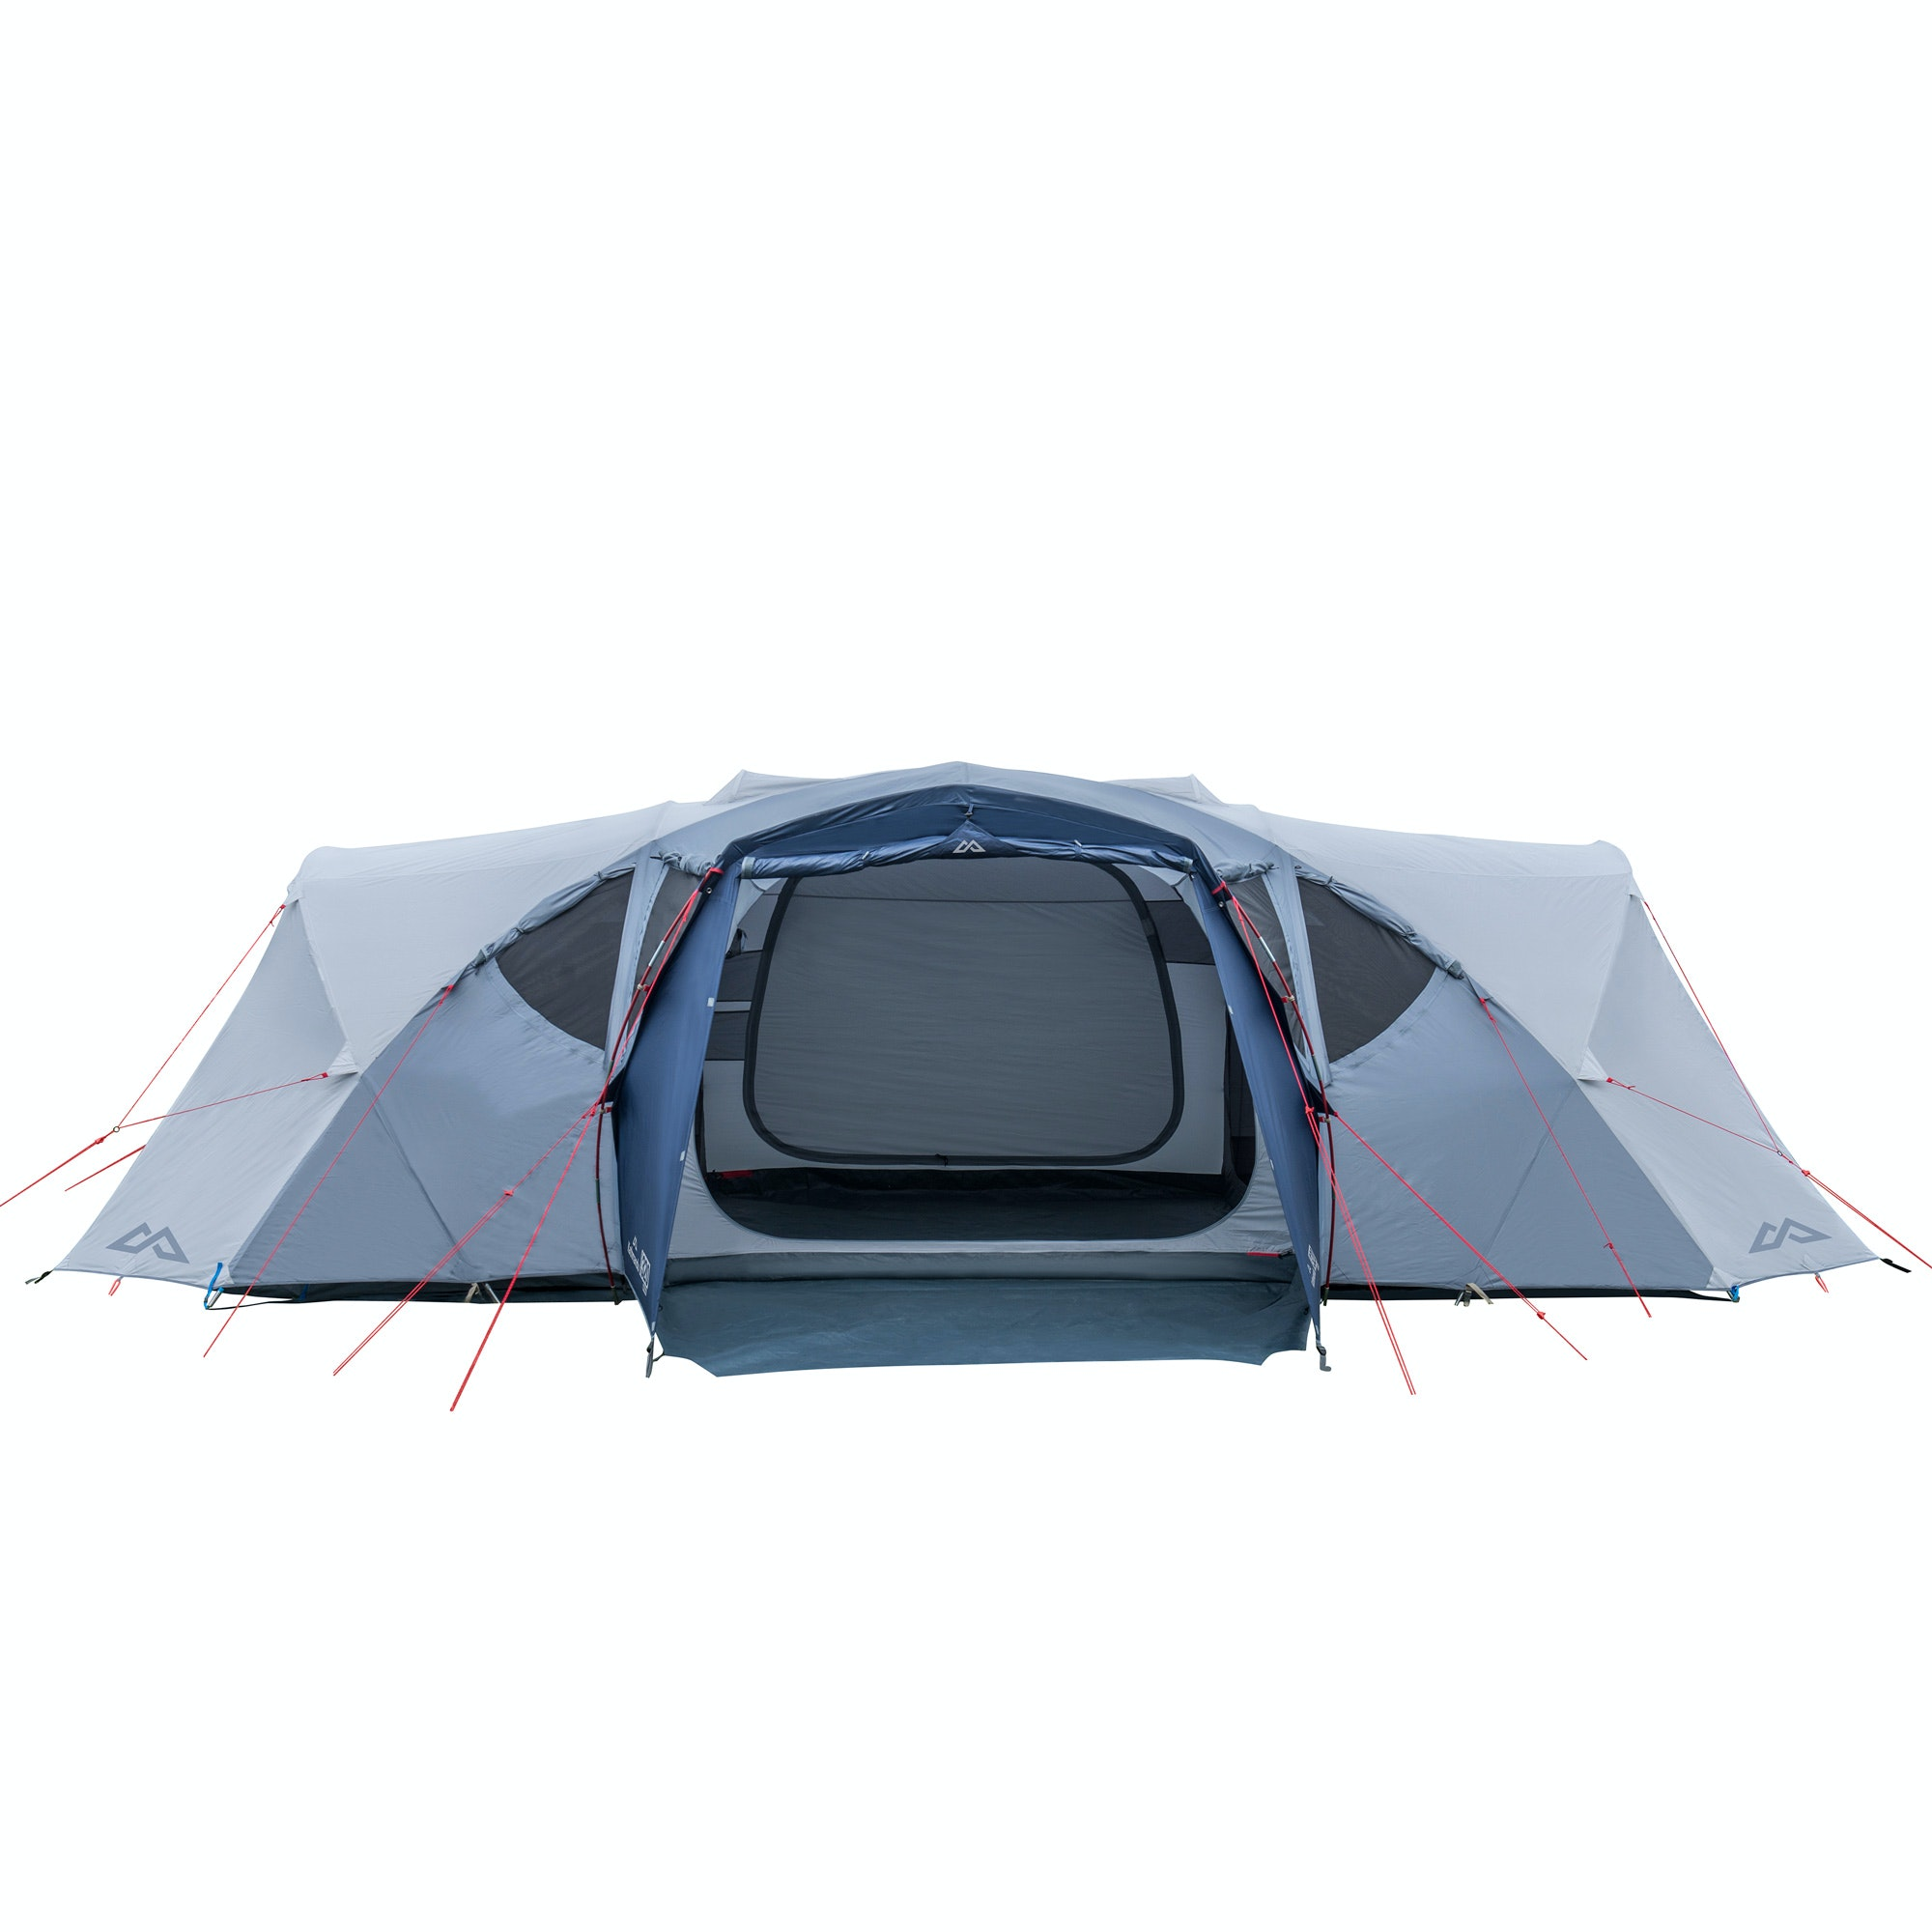 escort family dome tent 6-person instruction